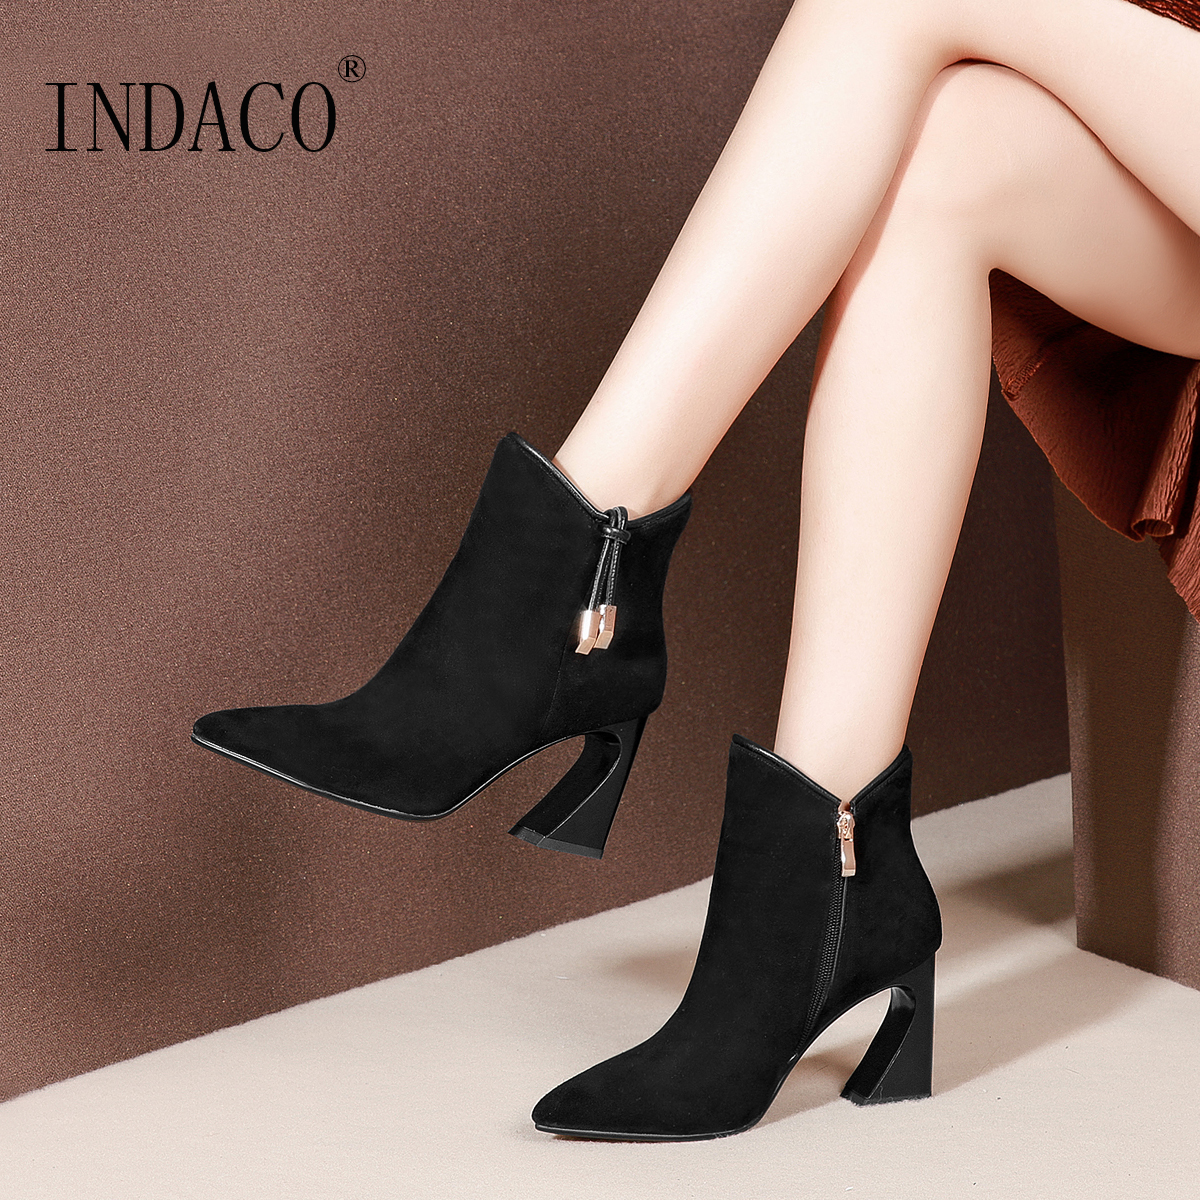 2018 Autumn Winter Suede Leather Boots Women Pointed Toe Women Winter Shoes Botte Hiver Femme 8cm